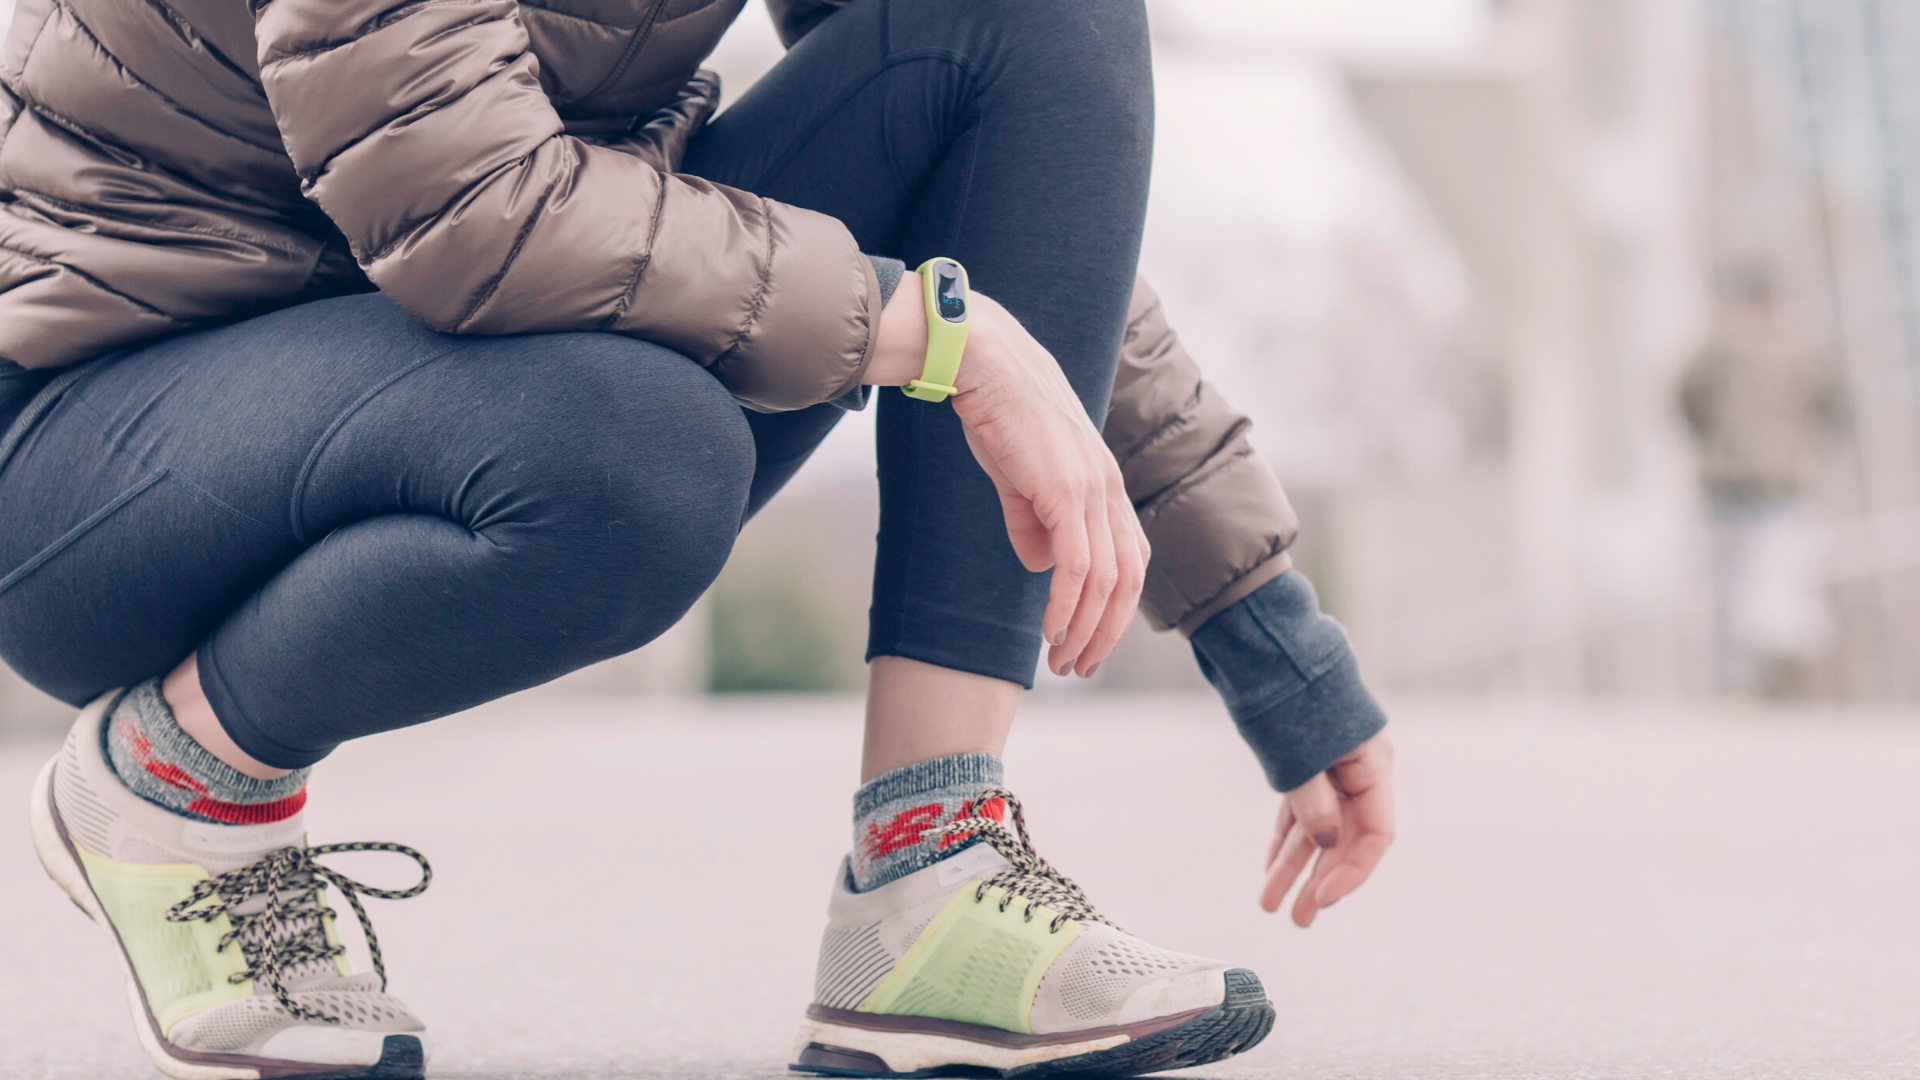 5 Running Items To Splurge On